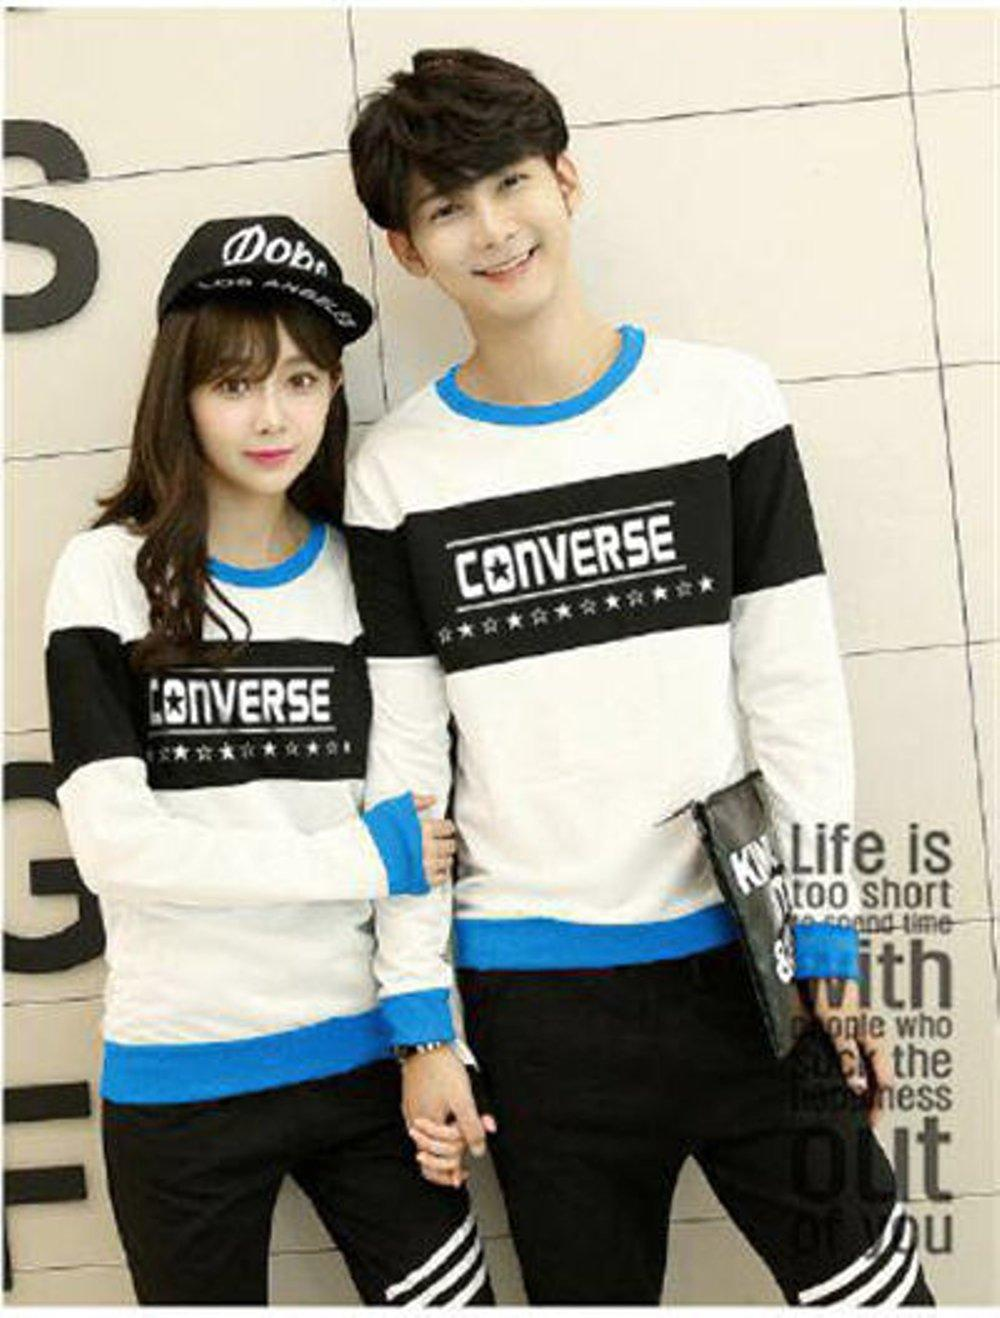 COUPLE LP CONVERSE PUTIH di lapak COUPLE GROSIR couplegrosir